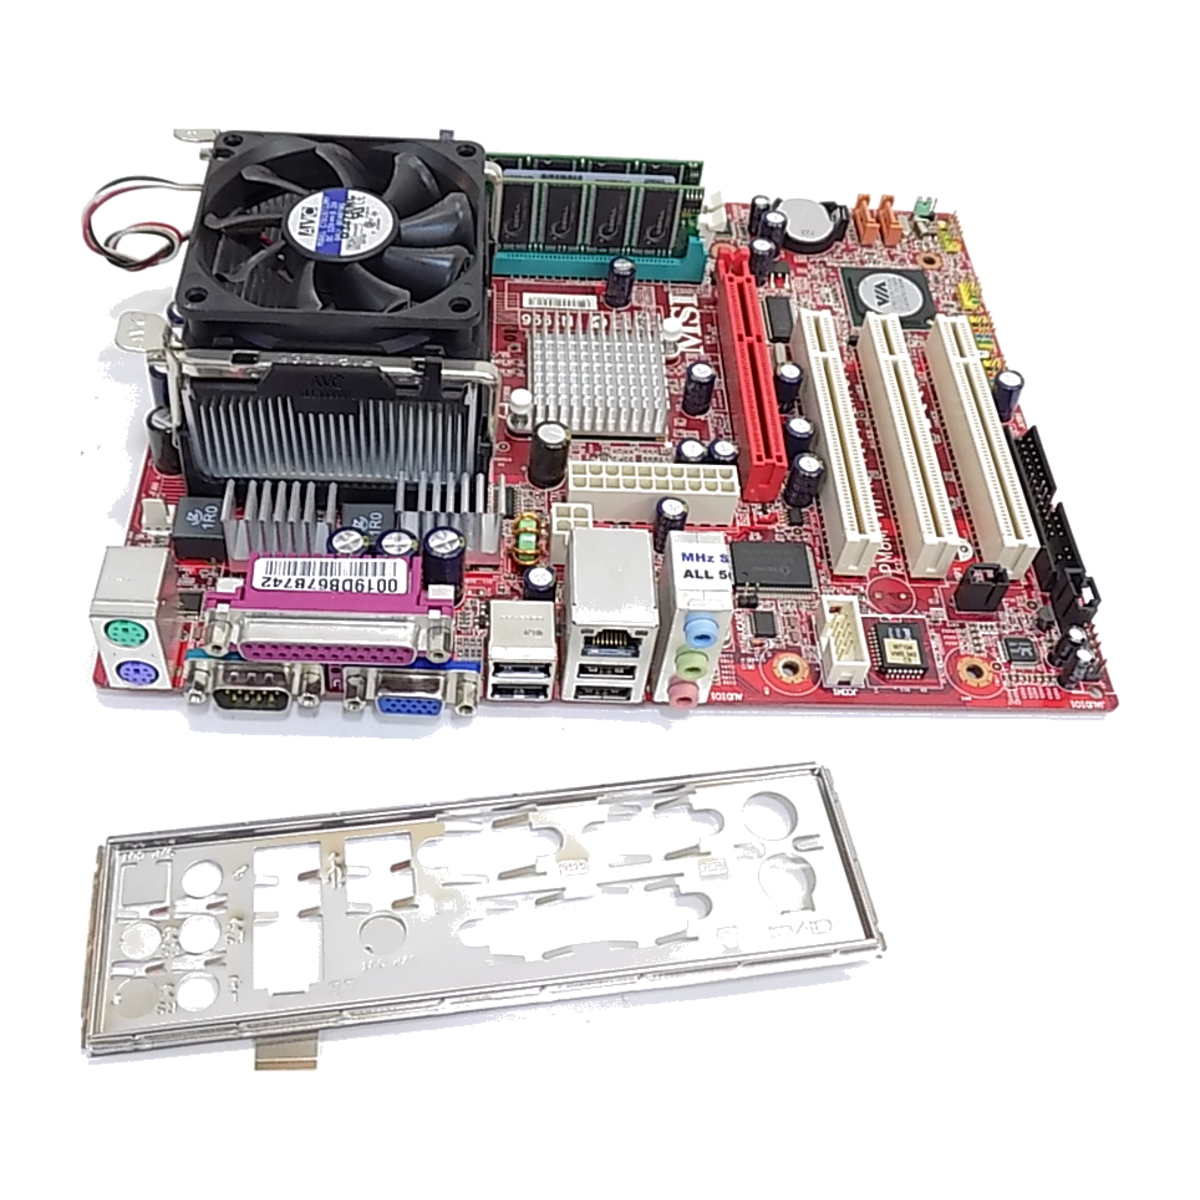 MSI VIA VT8237R PLUS VGA TREIBER WINDOWS 8